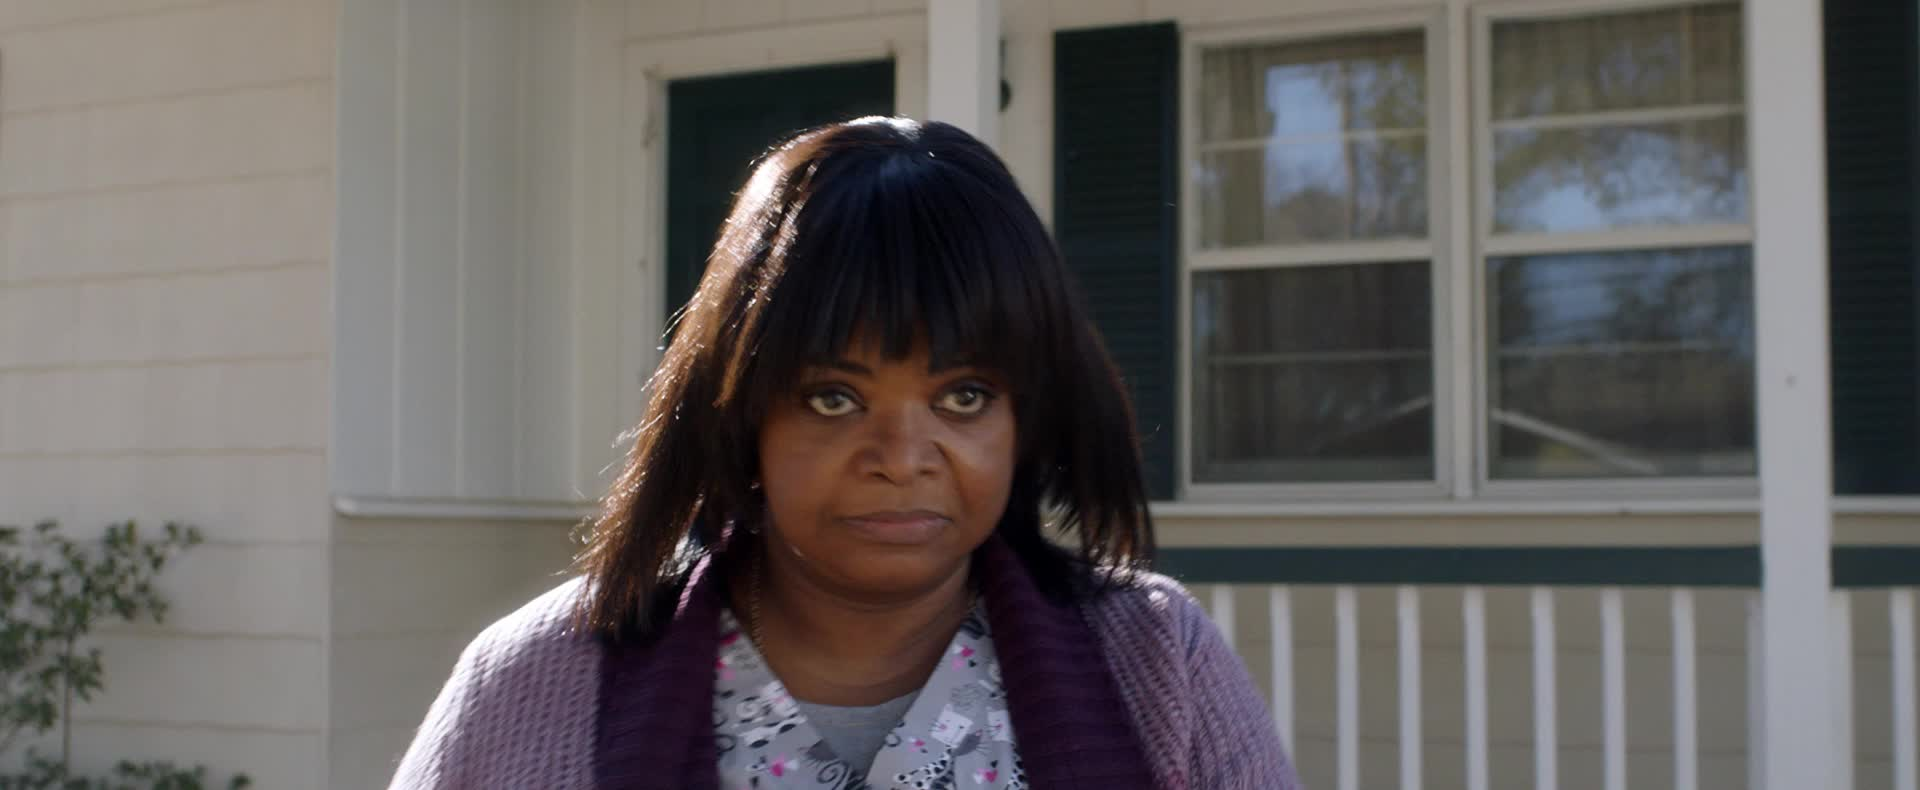 angry, ma, ma movie, mad, octavia spencer, pissed off, MA Pissed Off Octavia Spencer GIFs